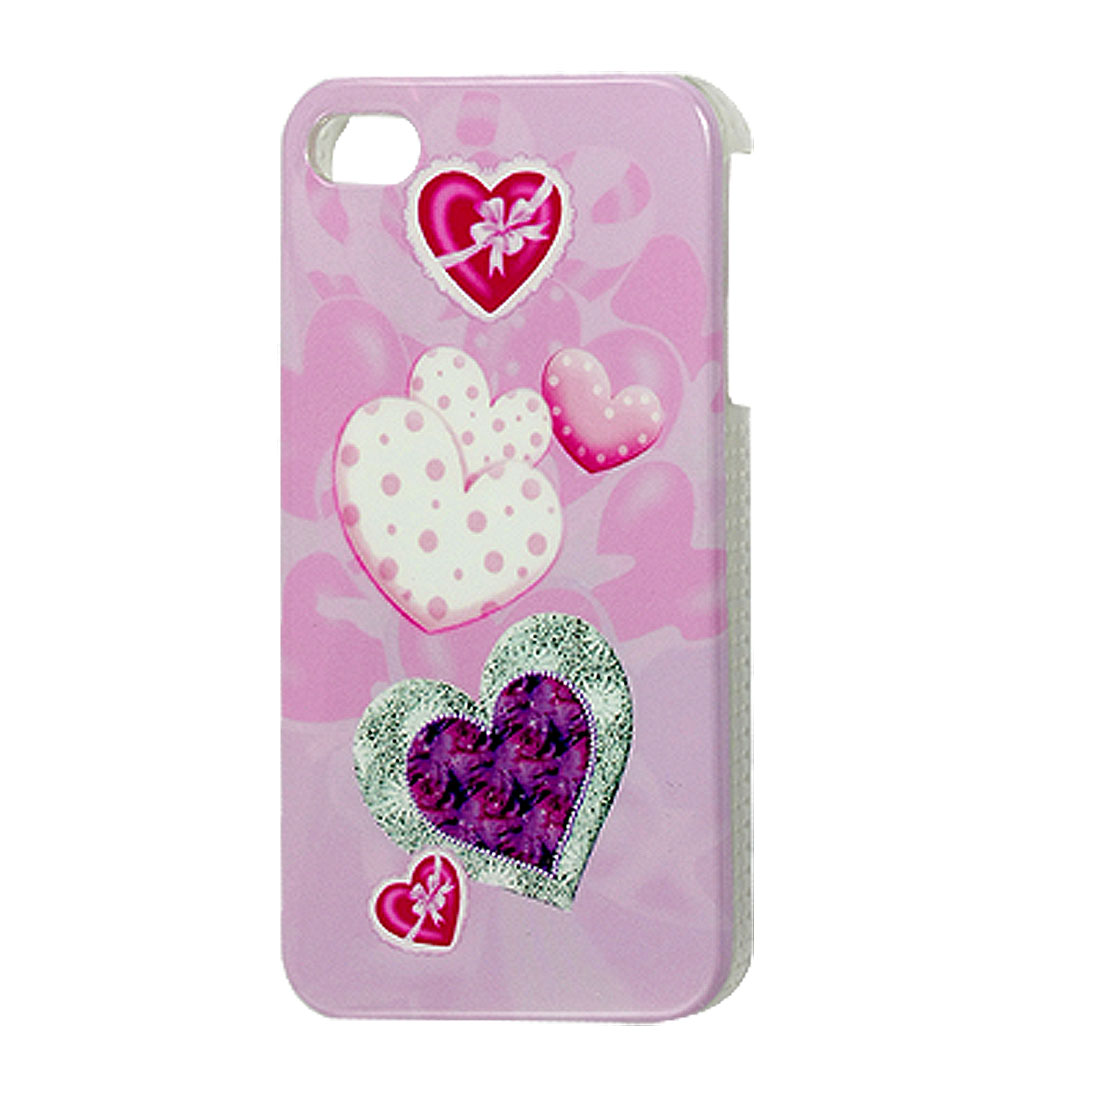 Colorful Hearts Print IMD Back Case Cover Shell for iPhone 4 4G 4S